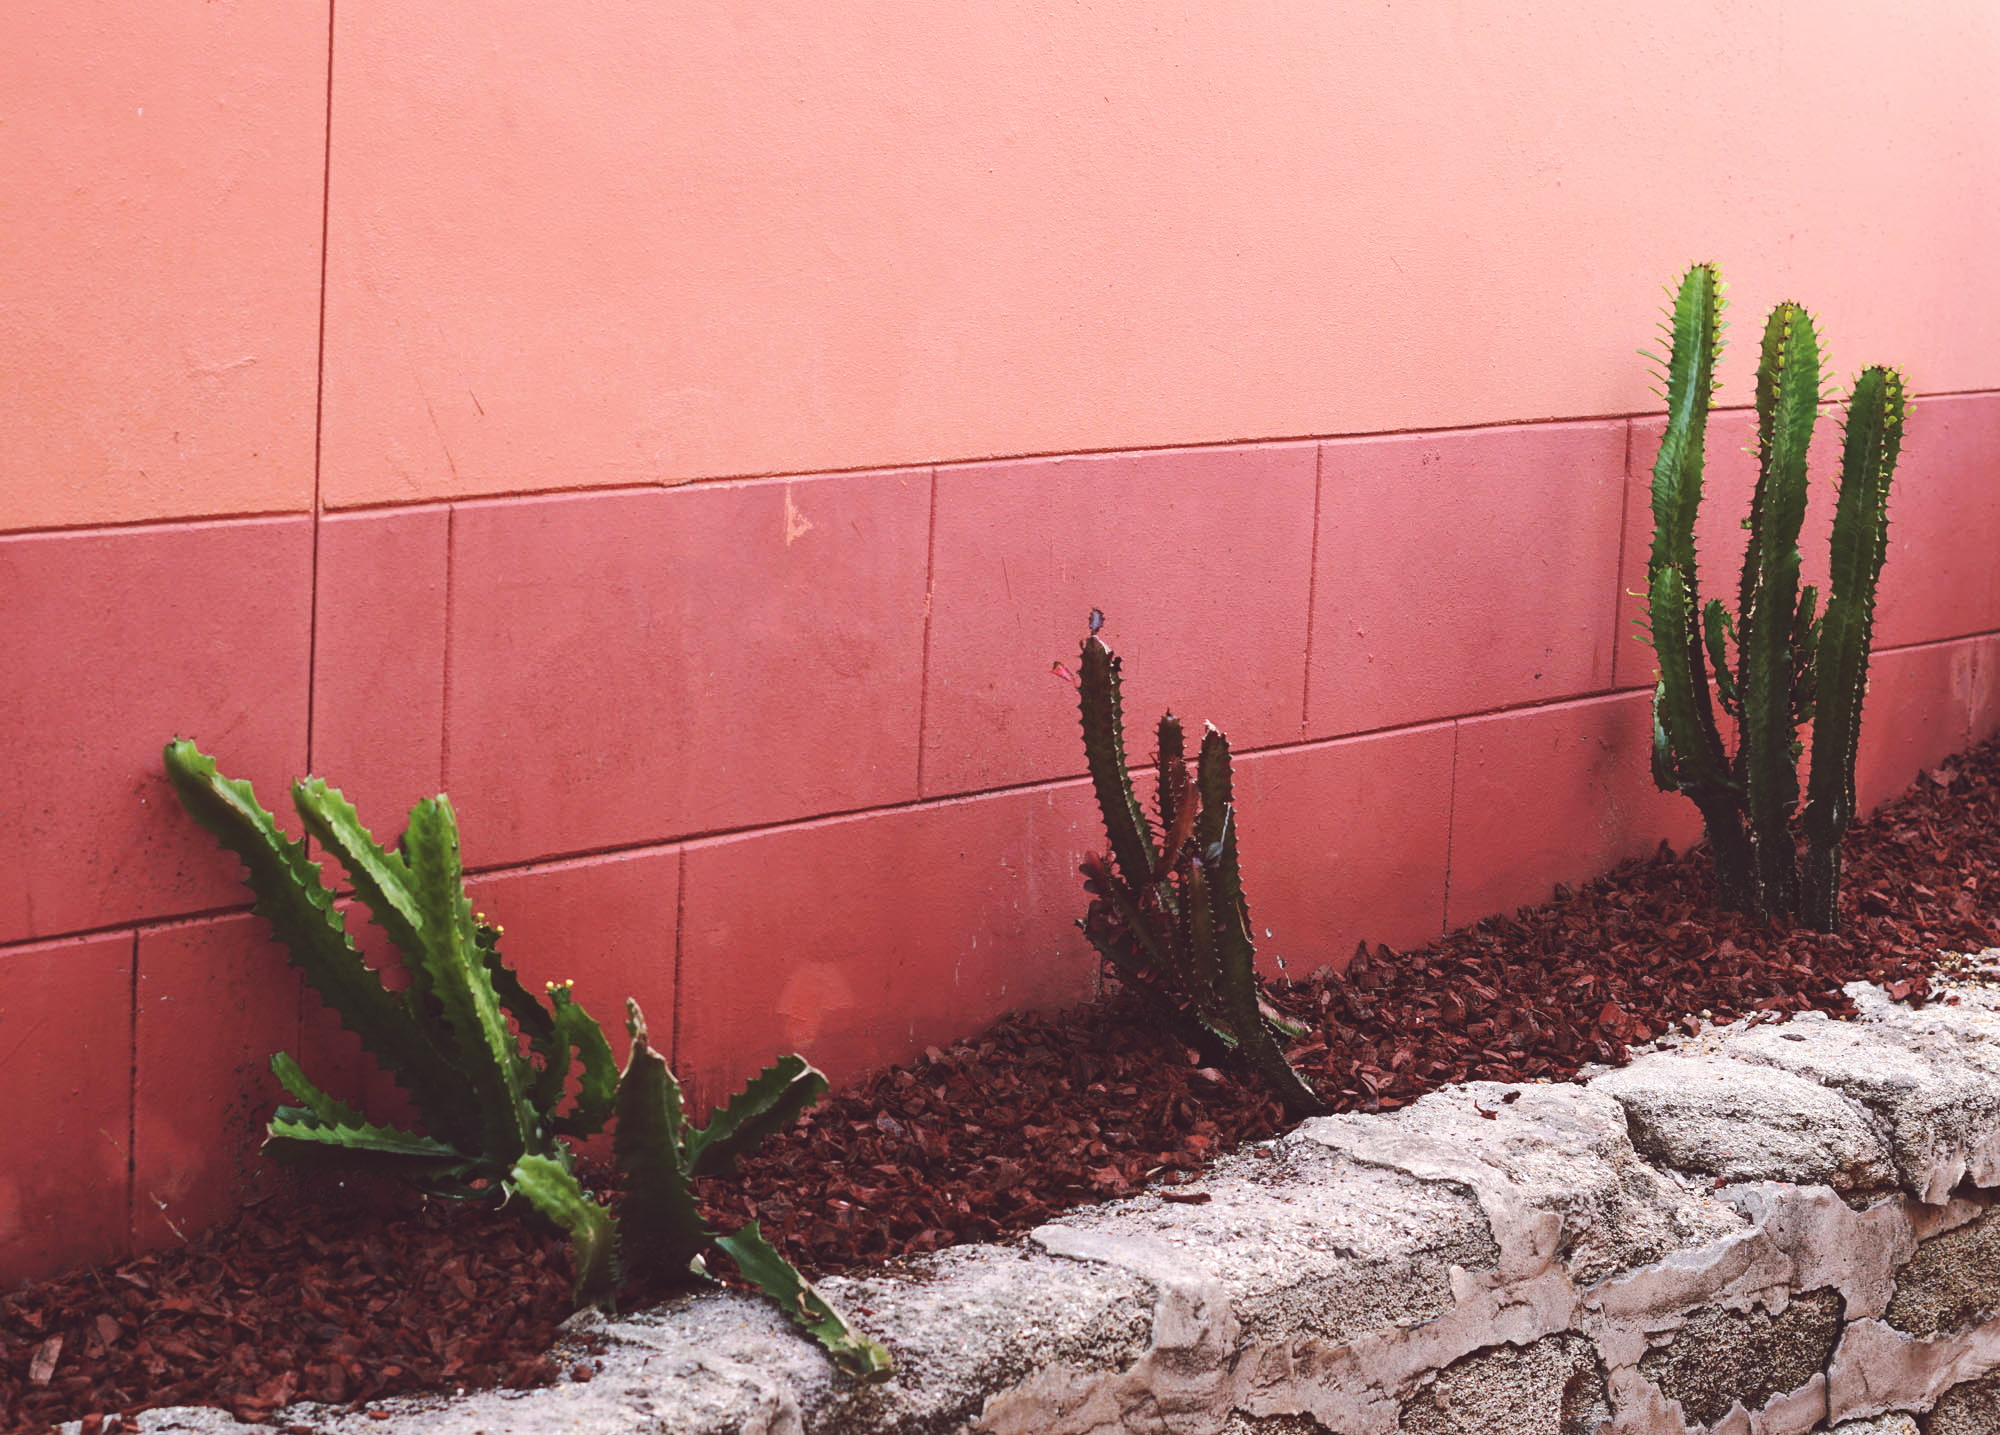 Pink Wall and Green Cactus